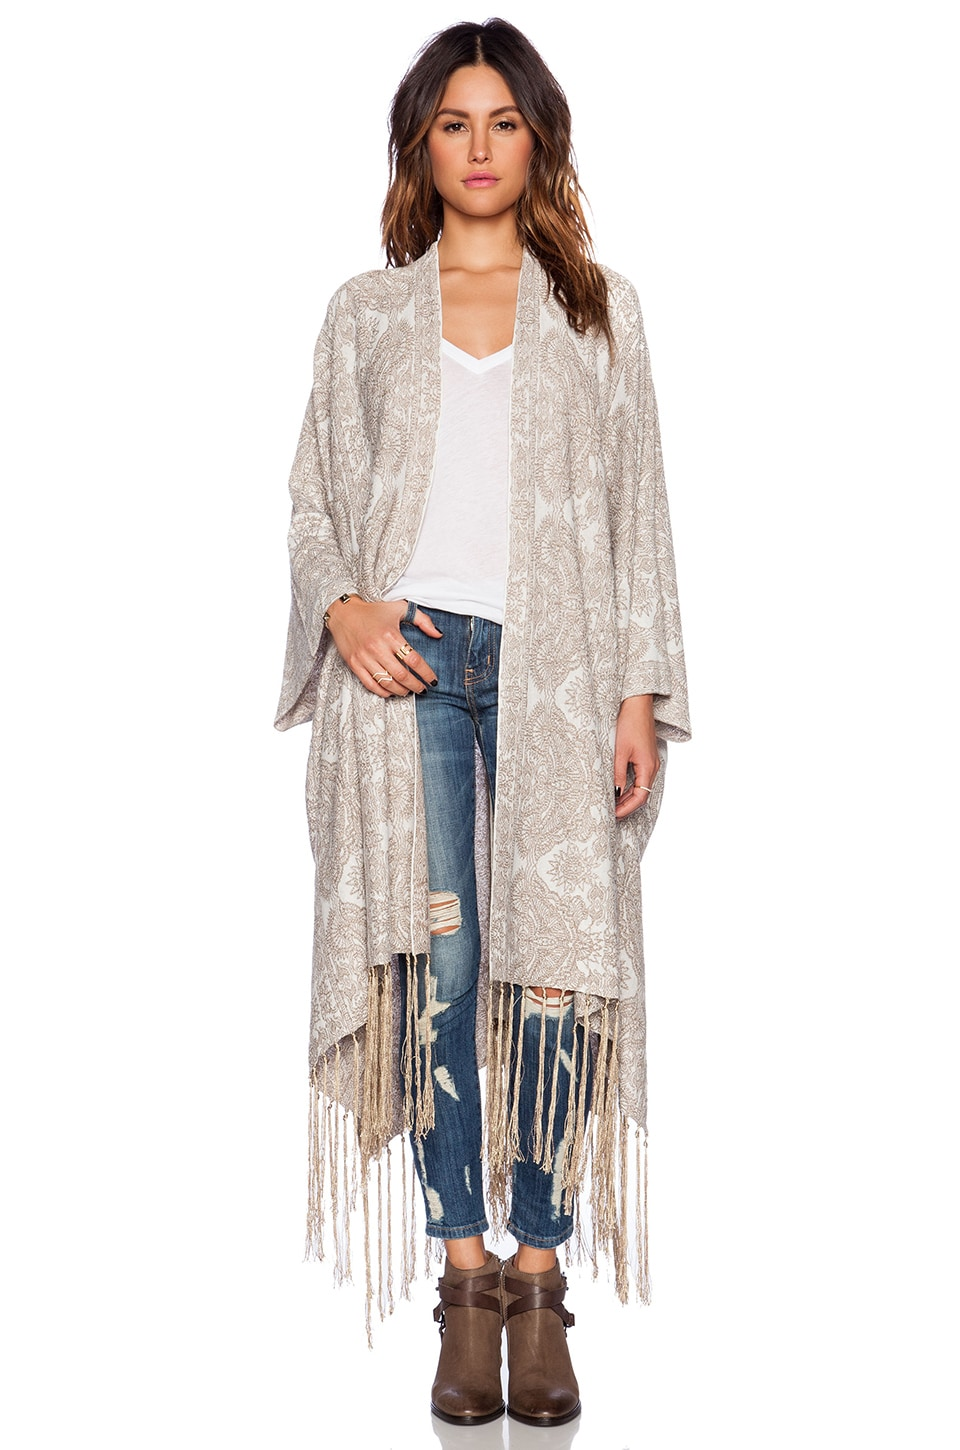 Free People Hendrix Cardigan in White Gold Combo